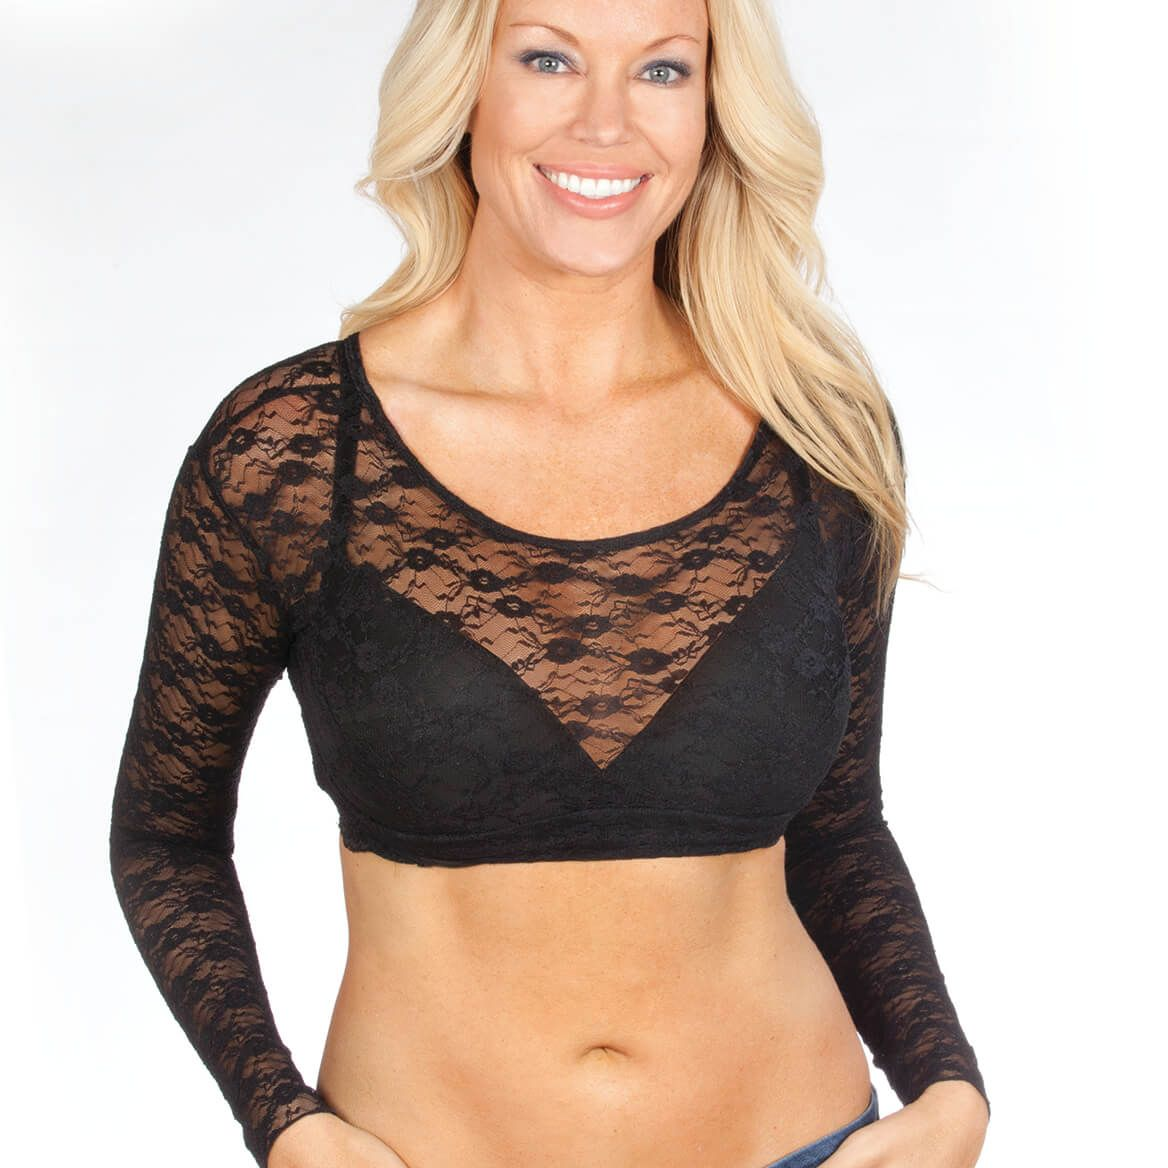 Lace Camisole Top-355473